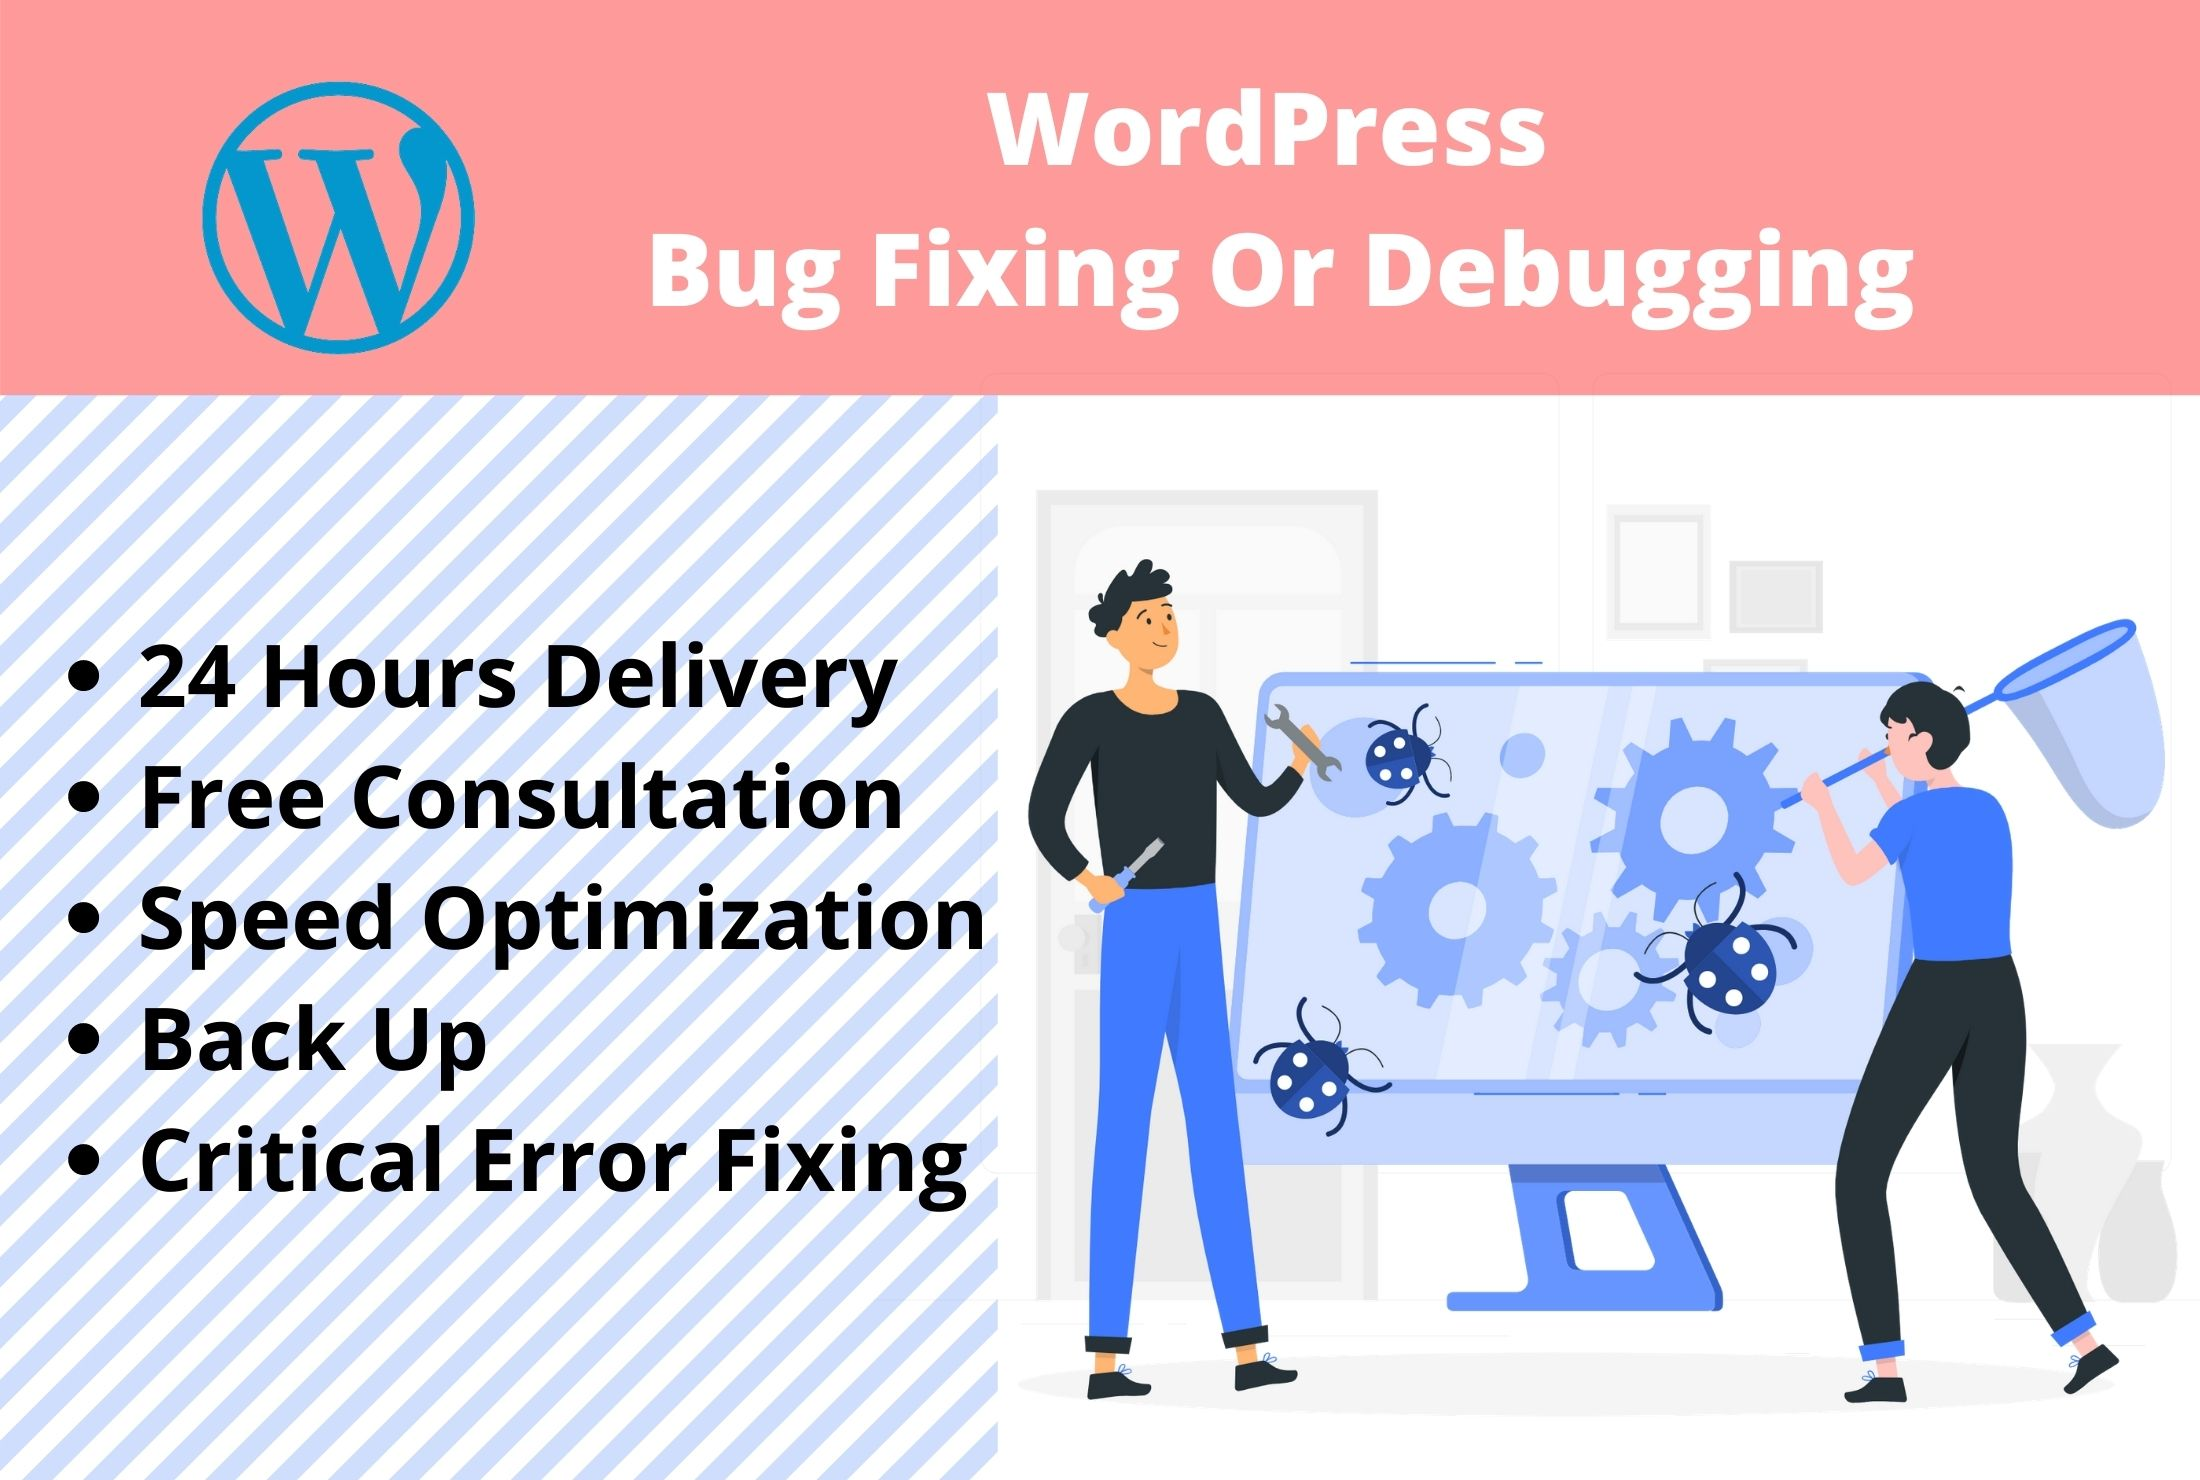 I will fix or debug 1 WordPress website issue,  critical error quickly